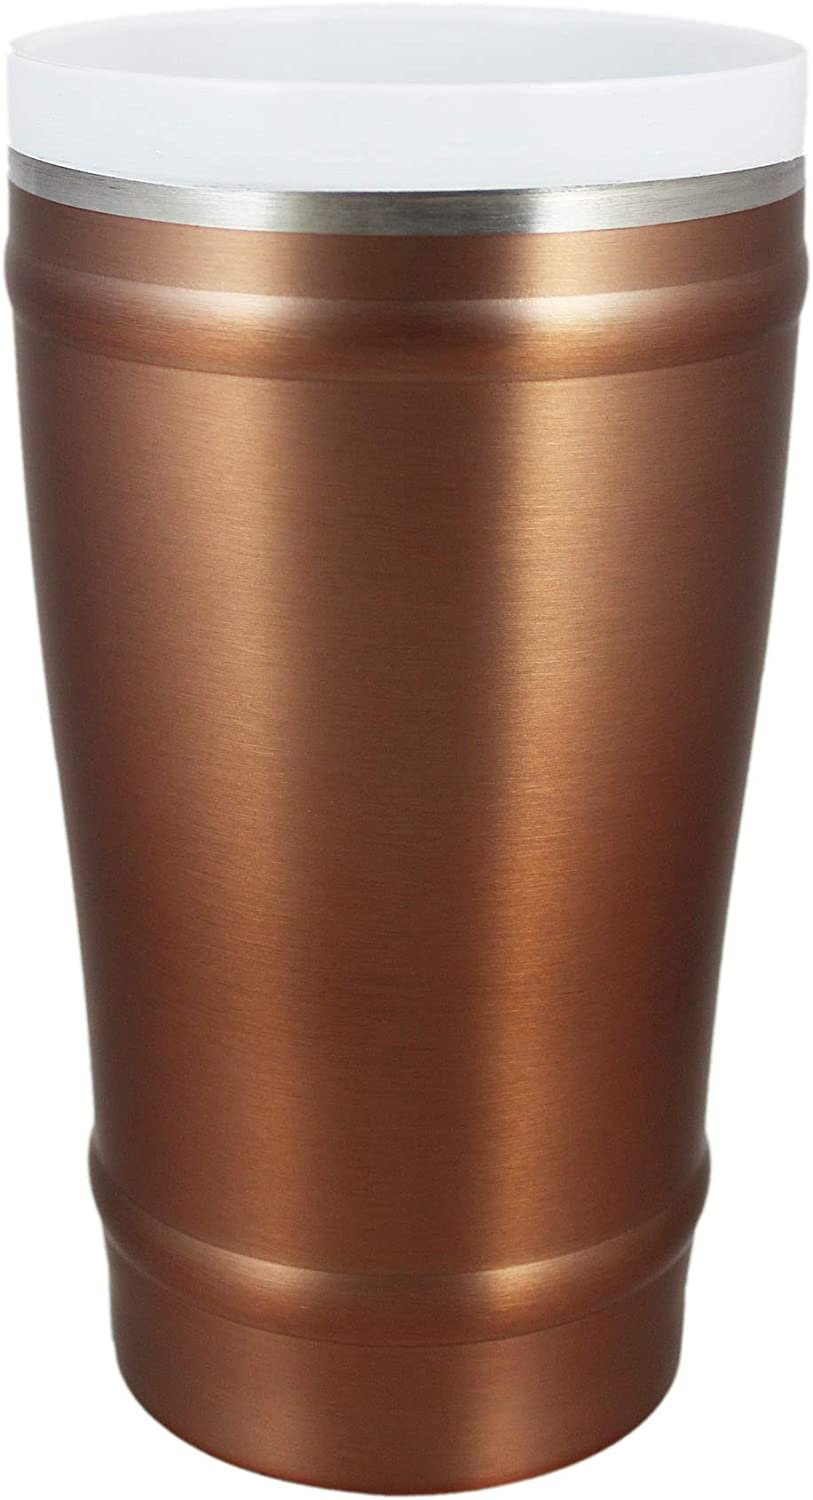 CeramiSteel 16 ounce Beer Pint Glass with Lid, Ceramic Coated Stainless Steel Tumbler, Double Walled Vacuum Insulated, BPA Free, Copper Paint Finish